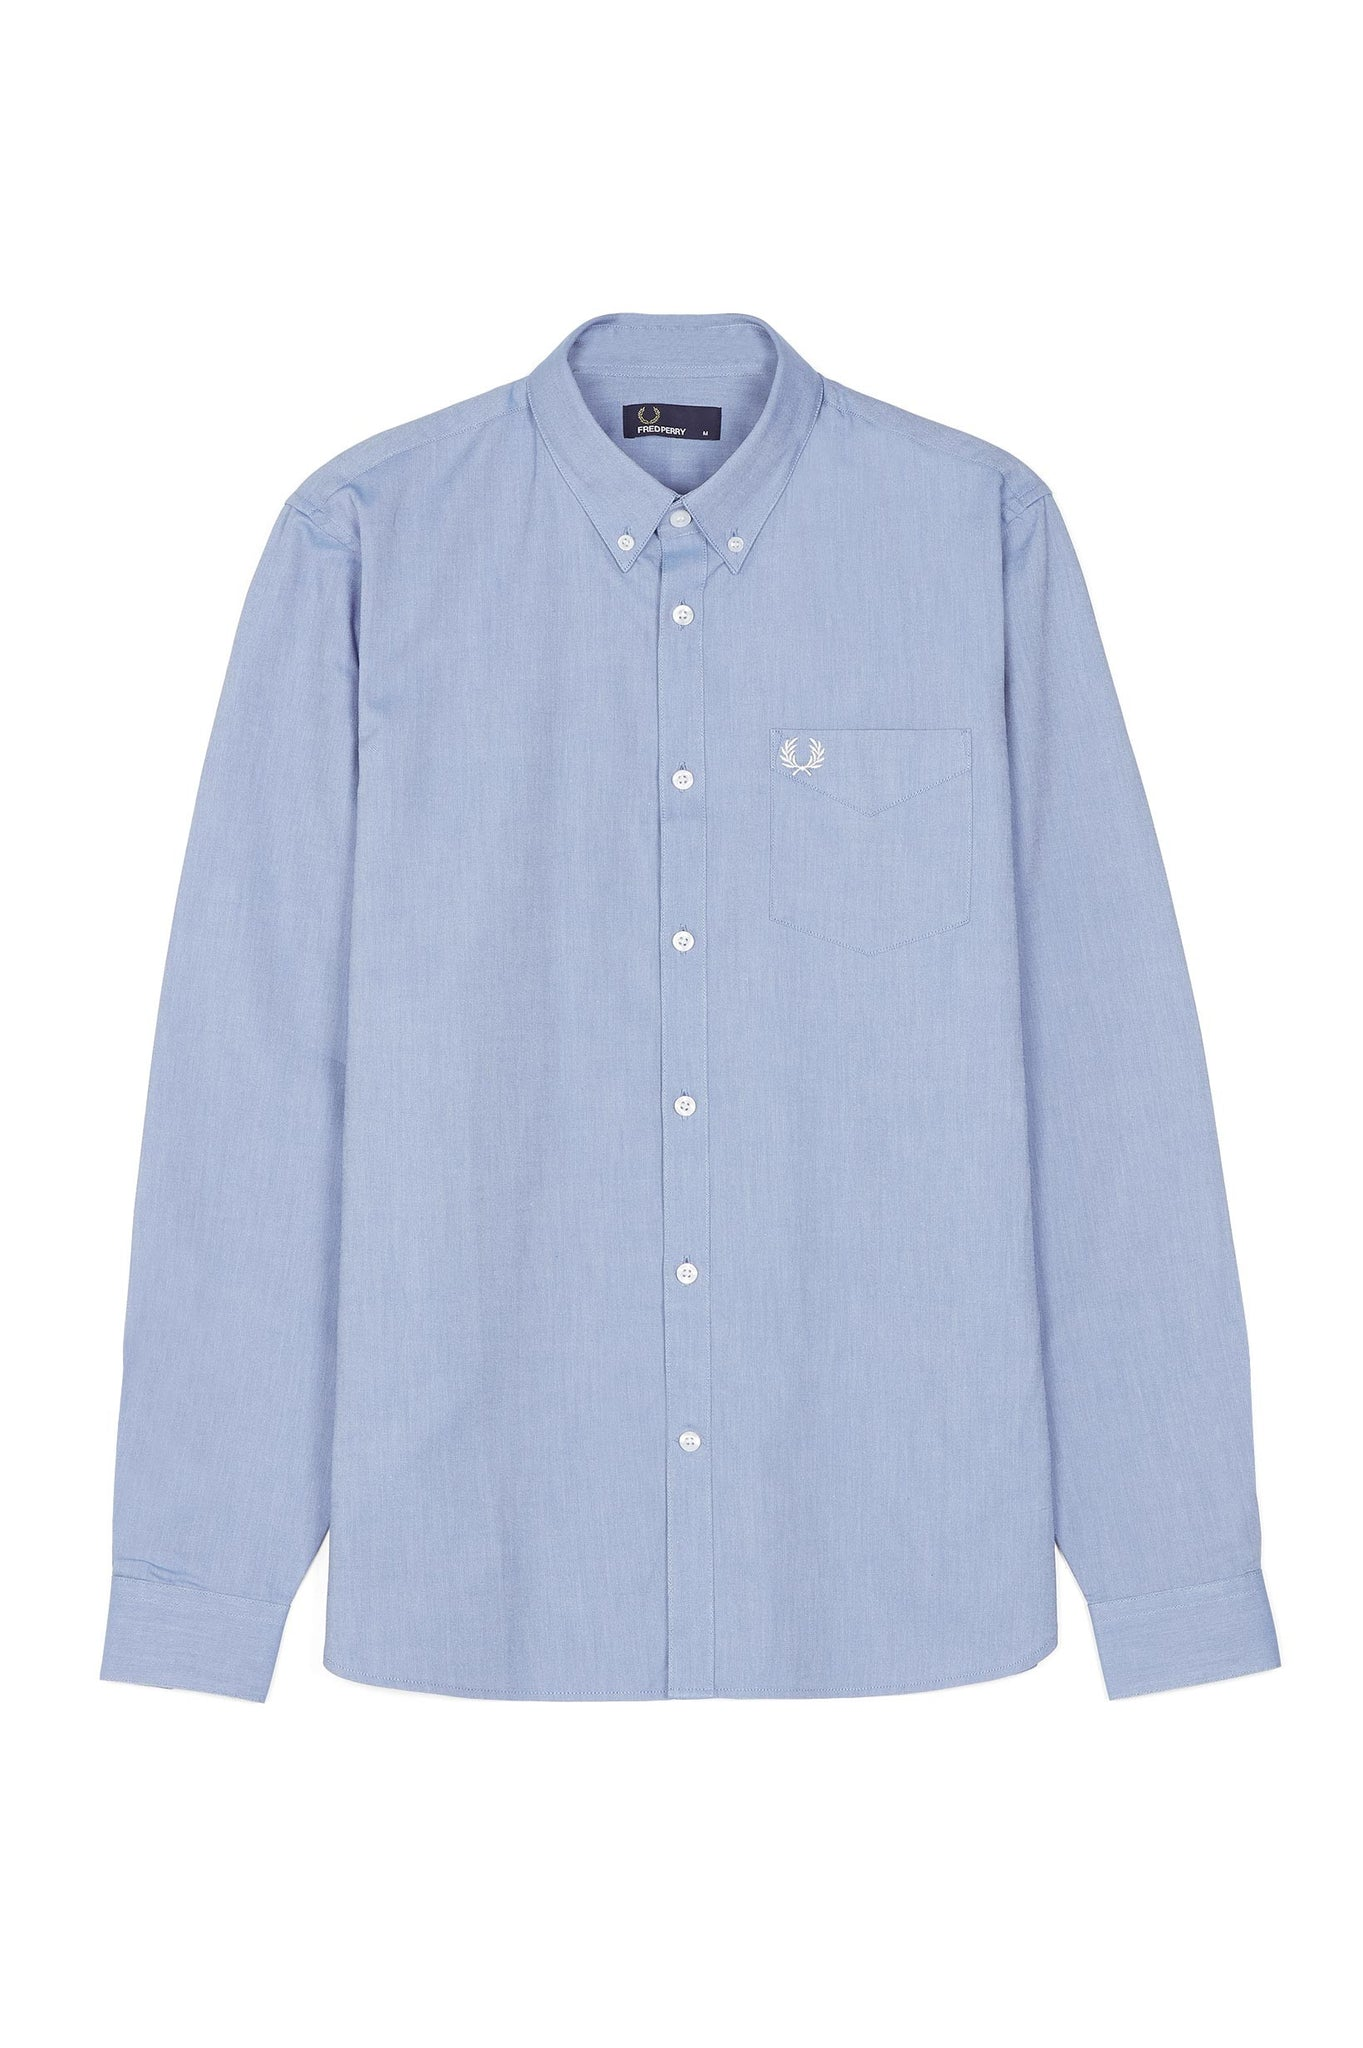 Fred Perry Light Smoke Classic Oxford Shirt